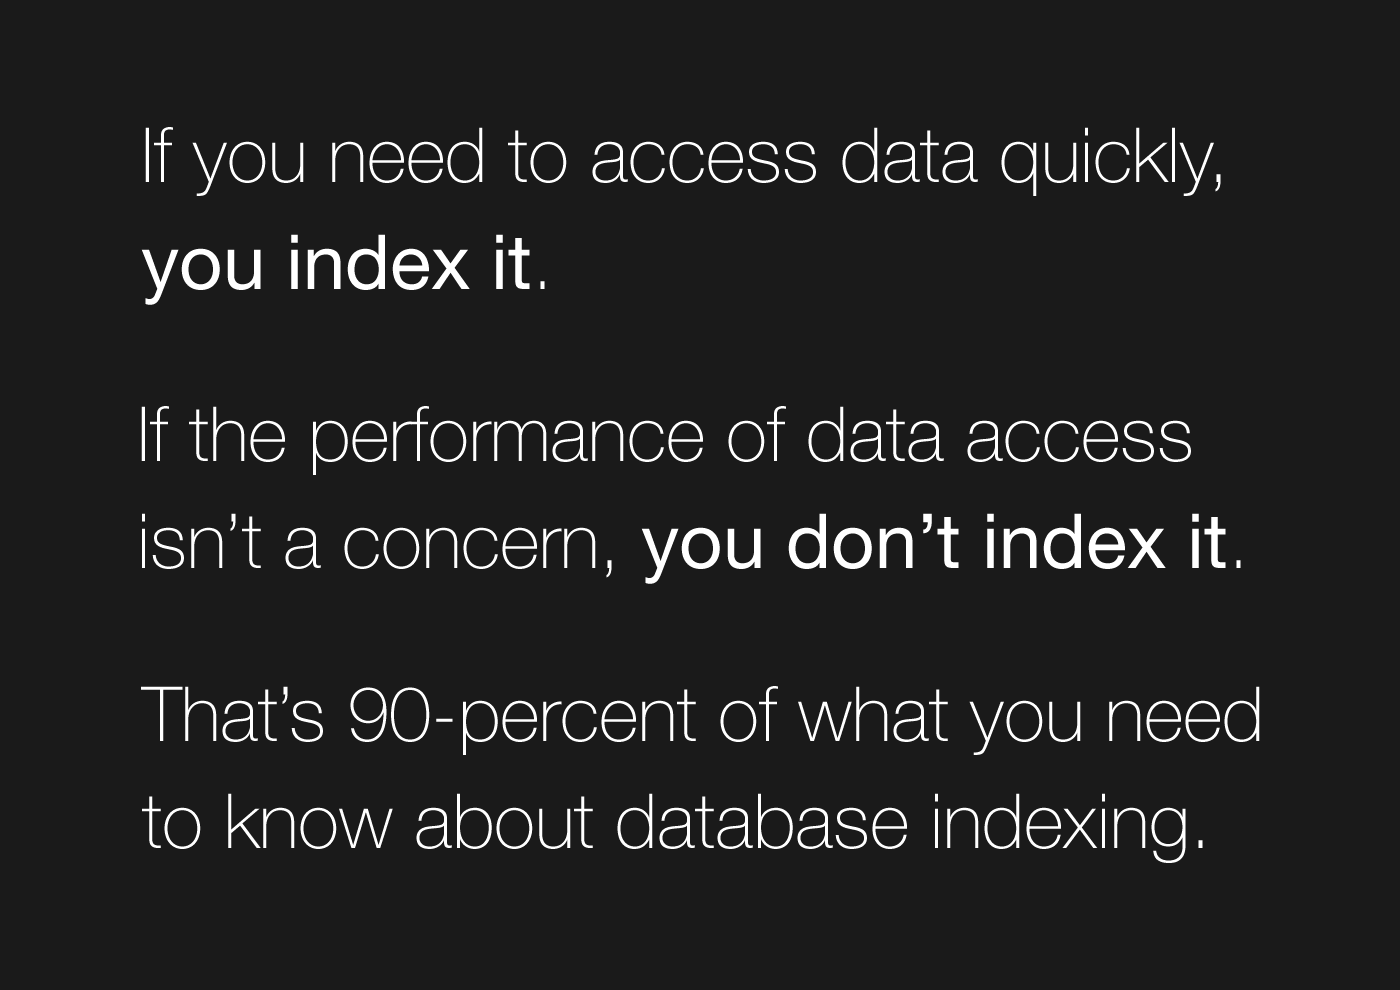 If you need to access data quickly, you index it. If the performance of data access isn't a concern, you don't index it. That's 90-percent of what you need to know about database indexing.